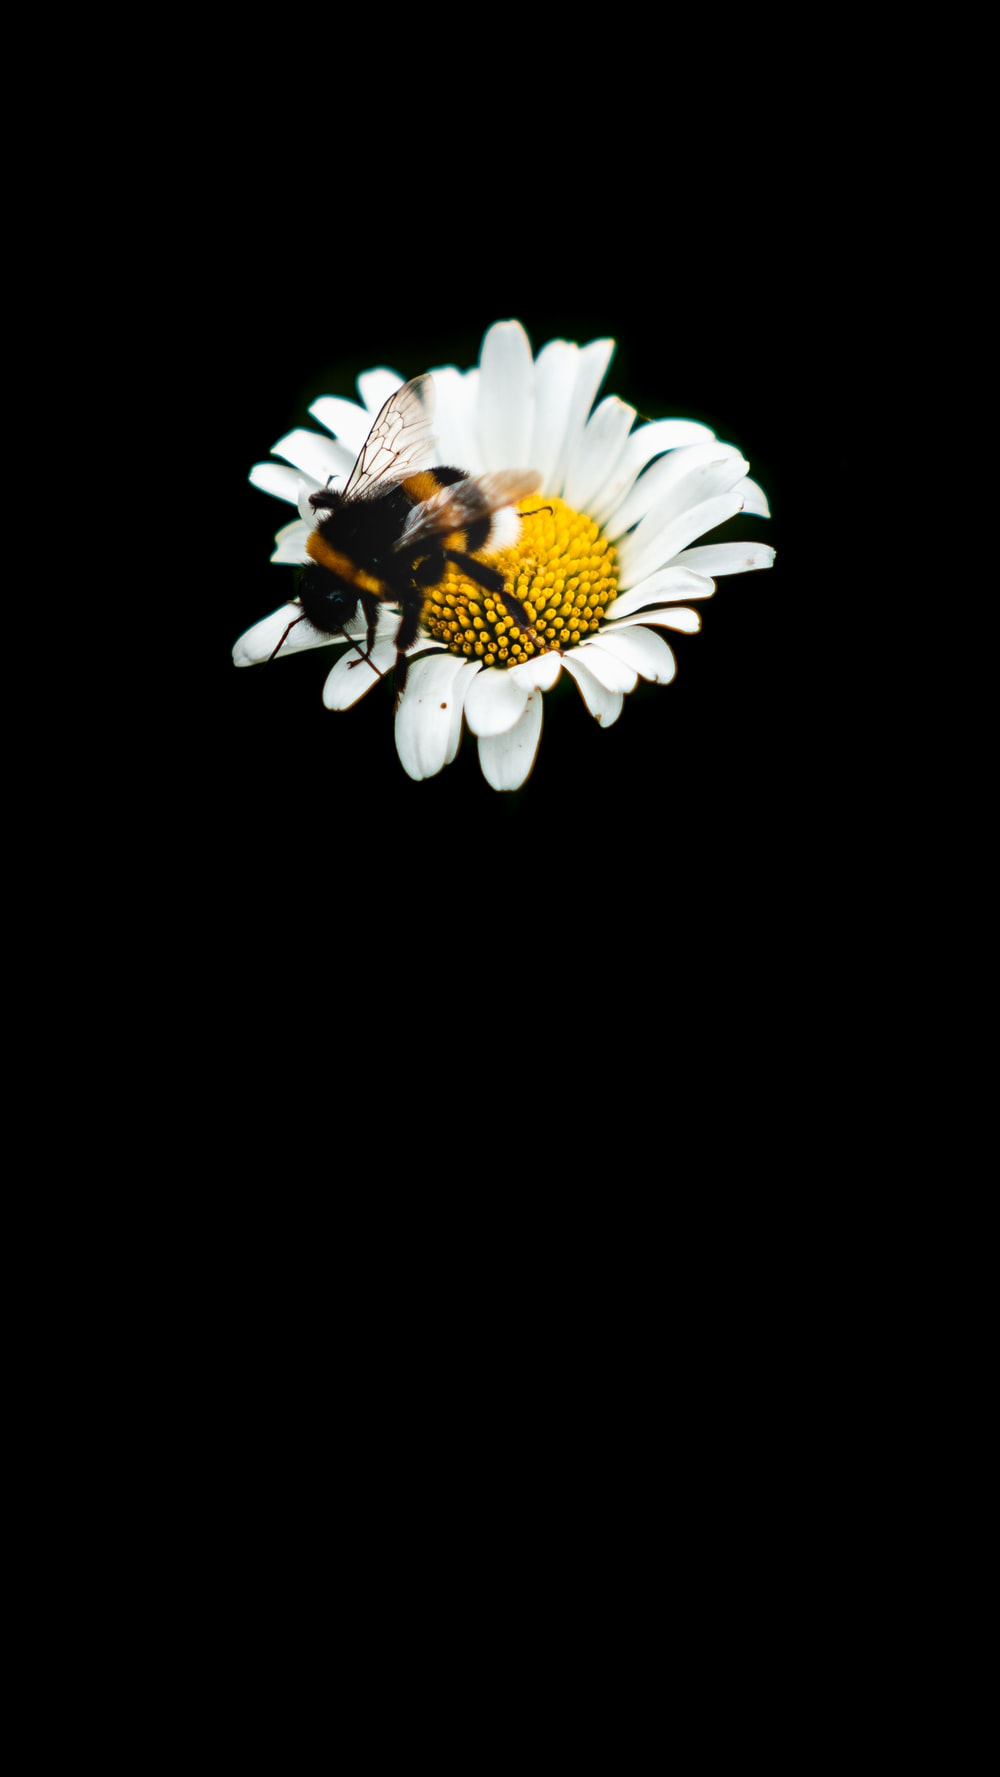 black and yellow butterfly perched on white daisy flower